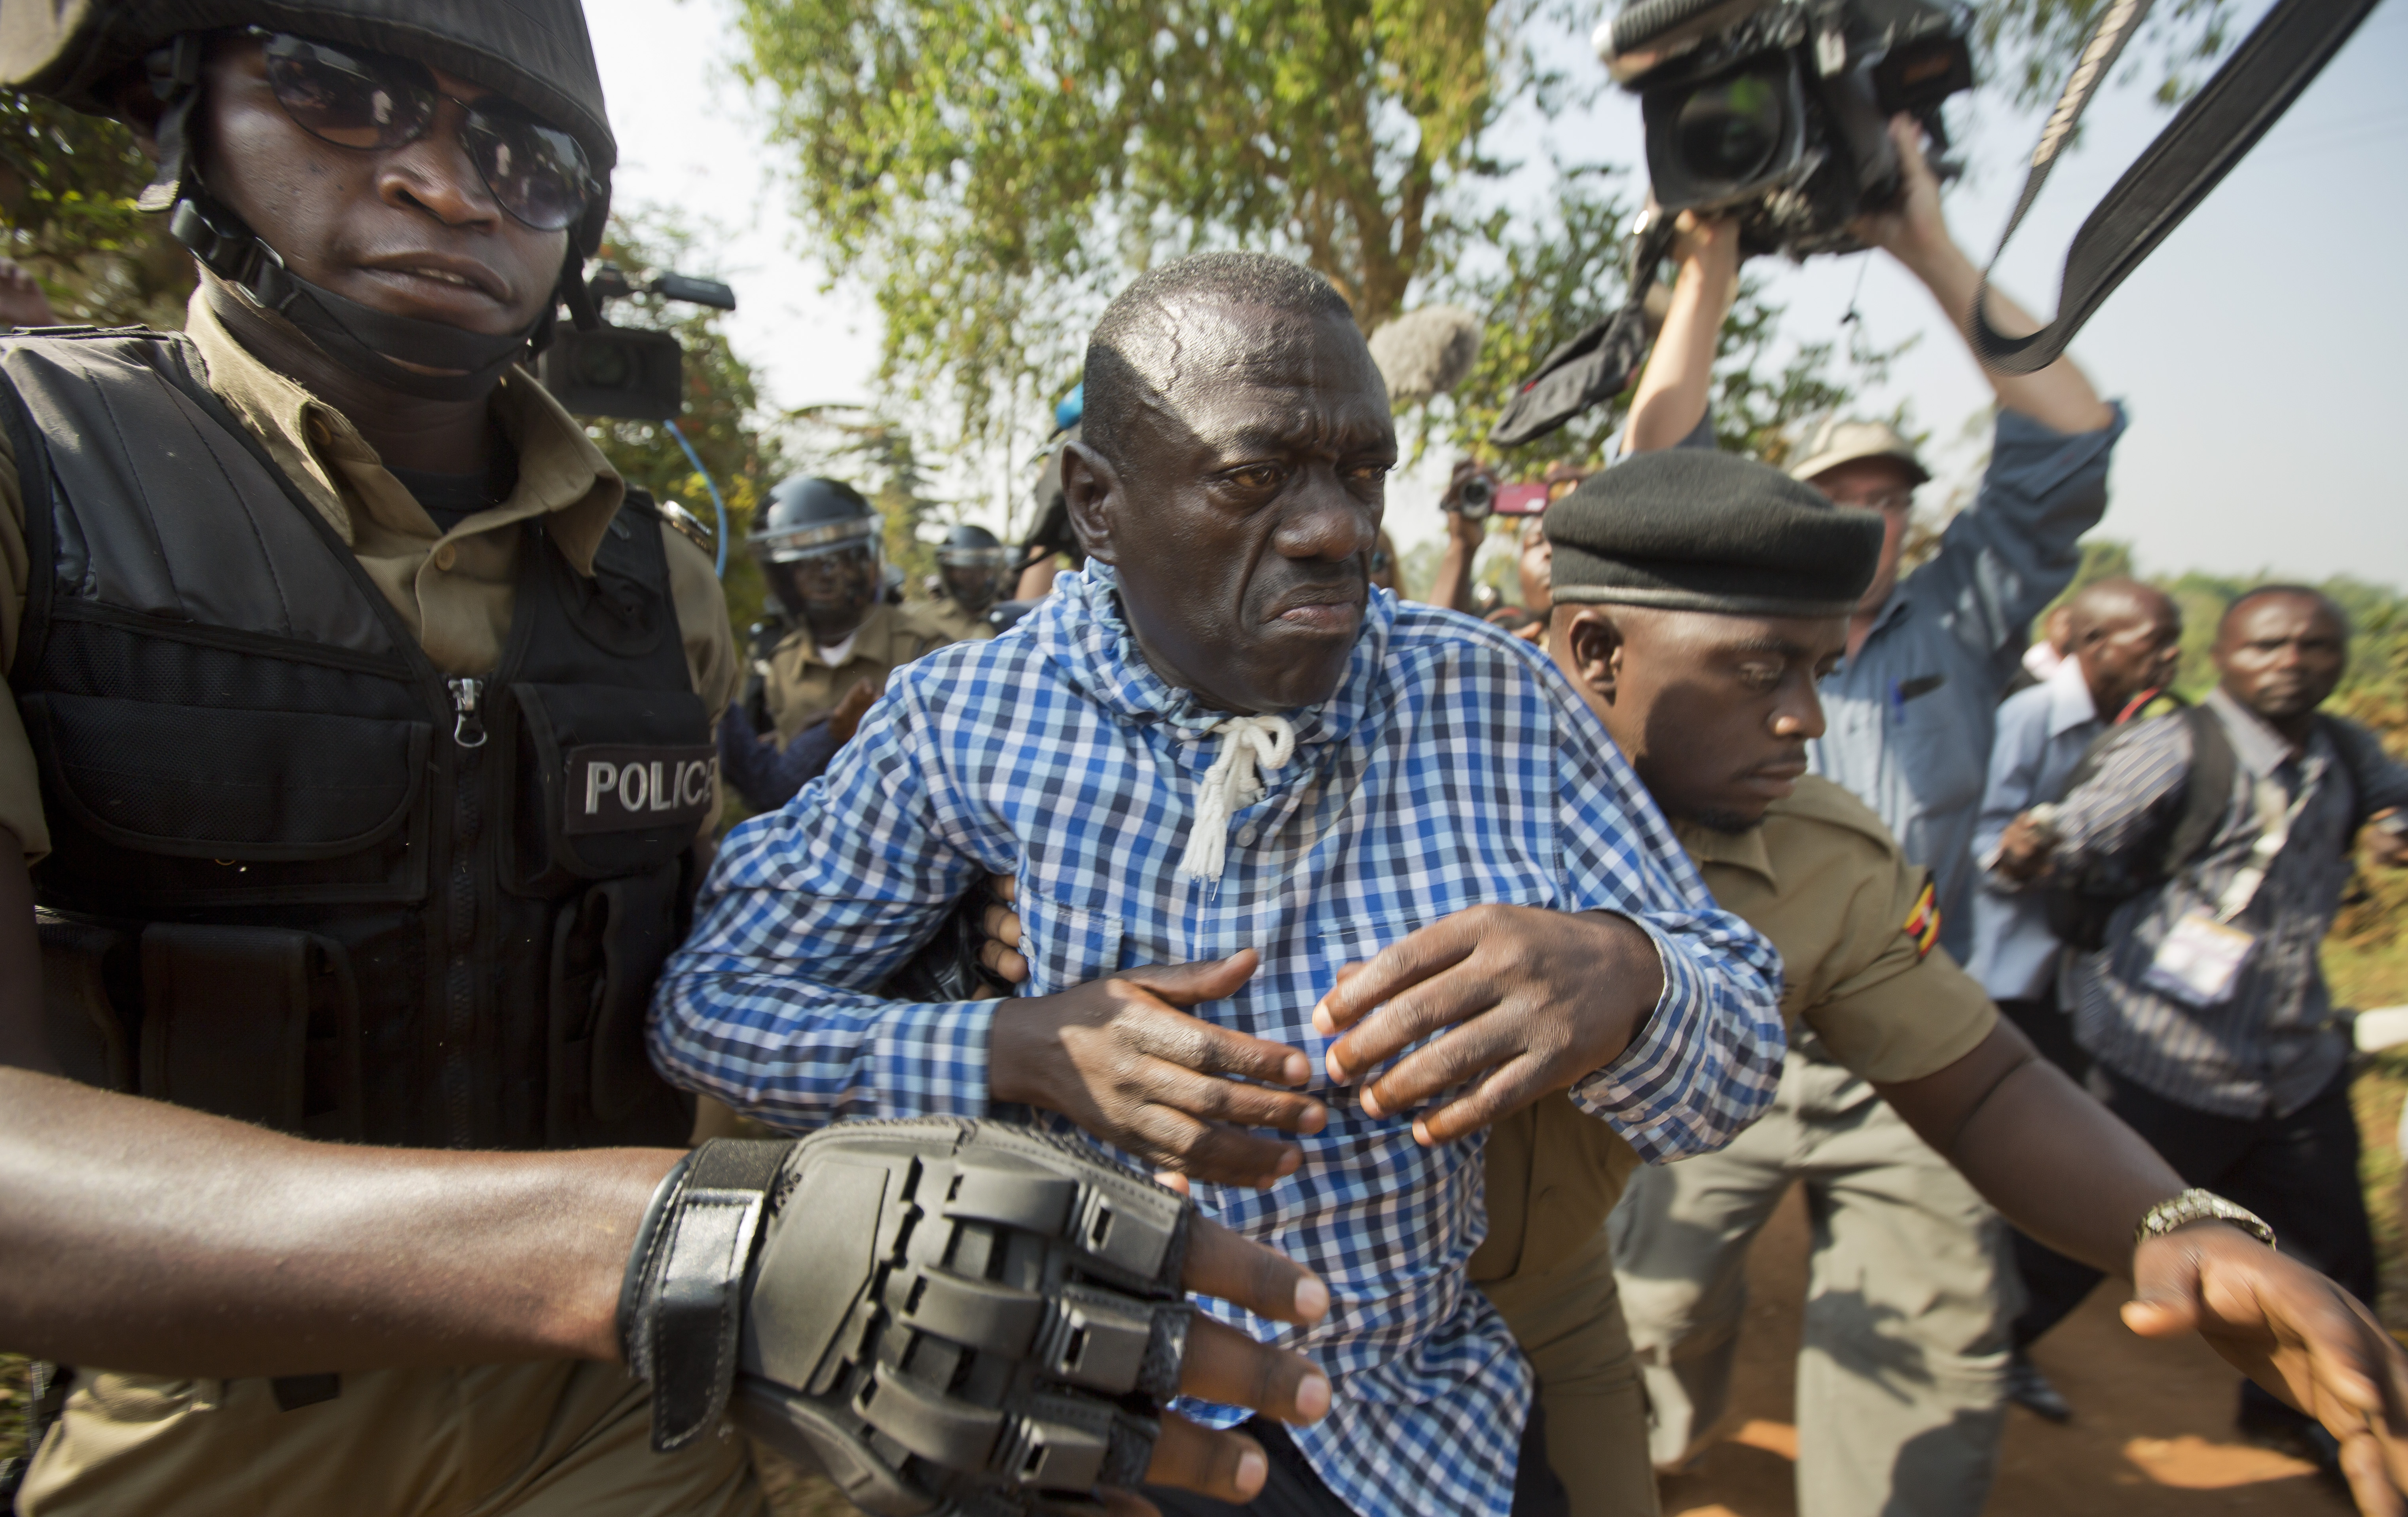 Uganda's main opposition leader Kizza Besigye, center, is arrested by police and thrown into the back of a blacked-out police van which whisked him away and was later seen at a rural police station, outside his home in Kasangati, Uganda, Feb. 22, 201...